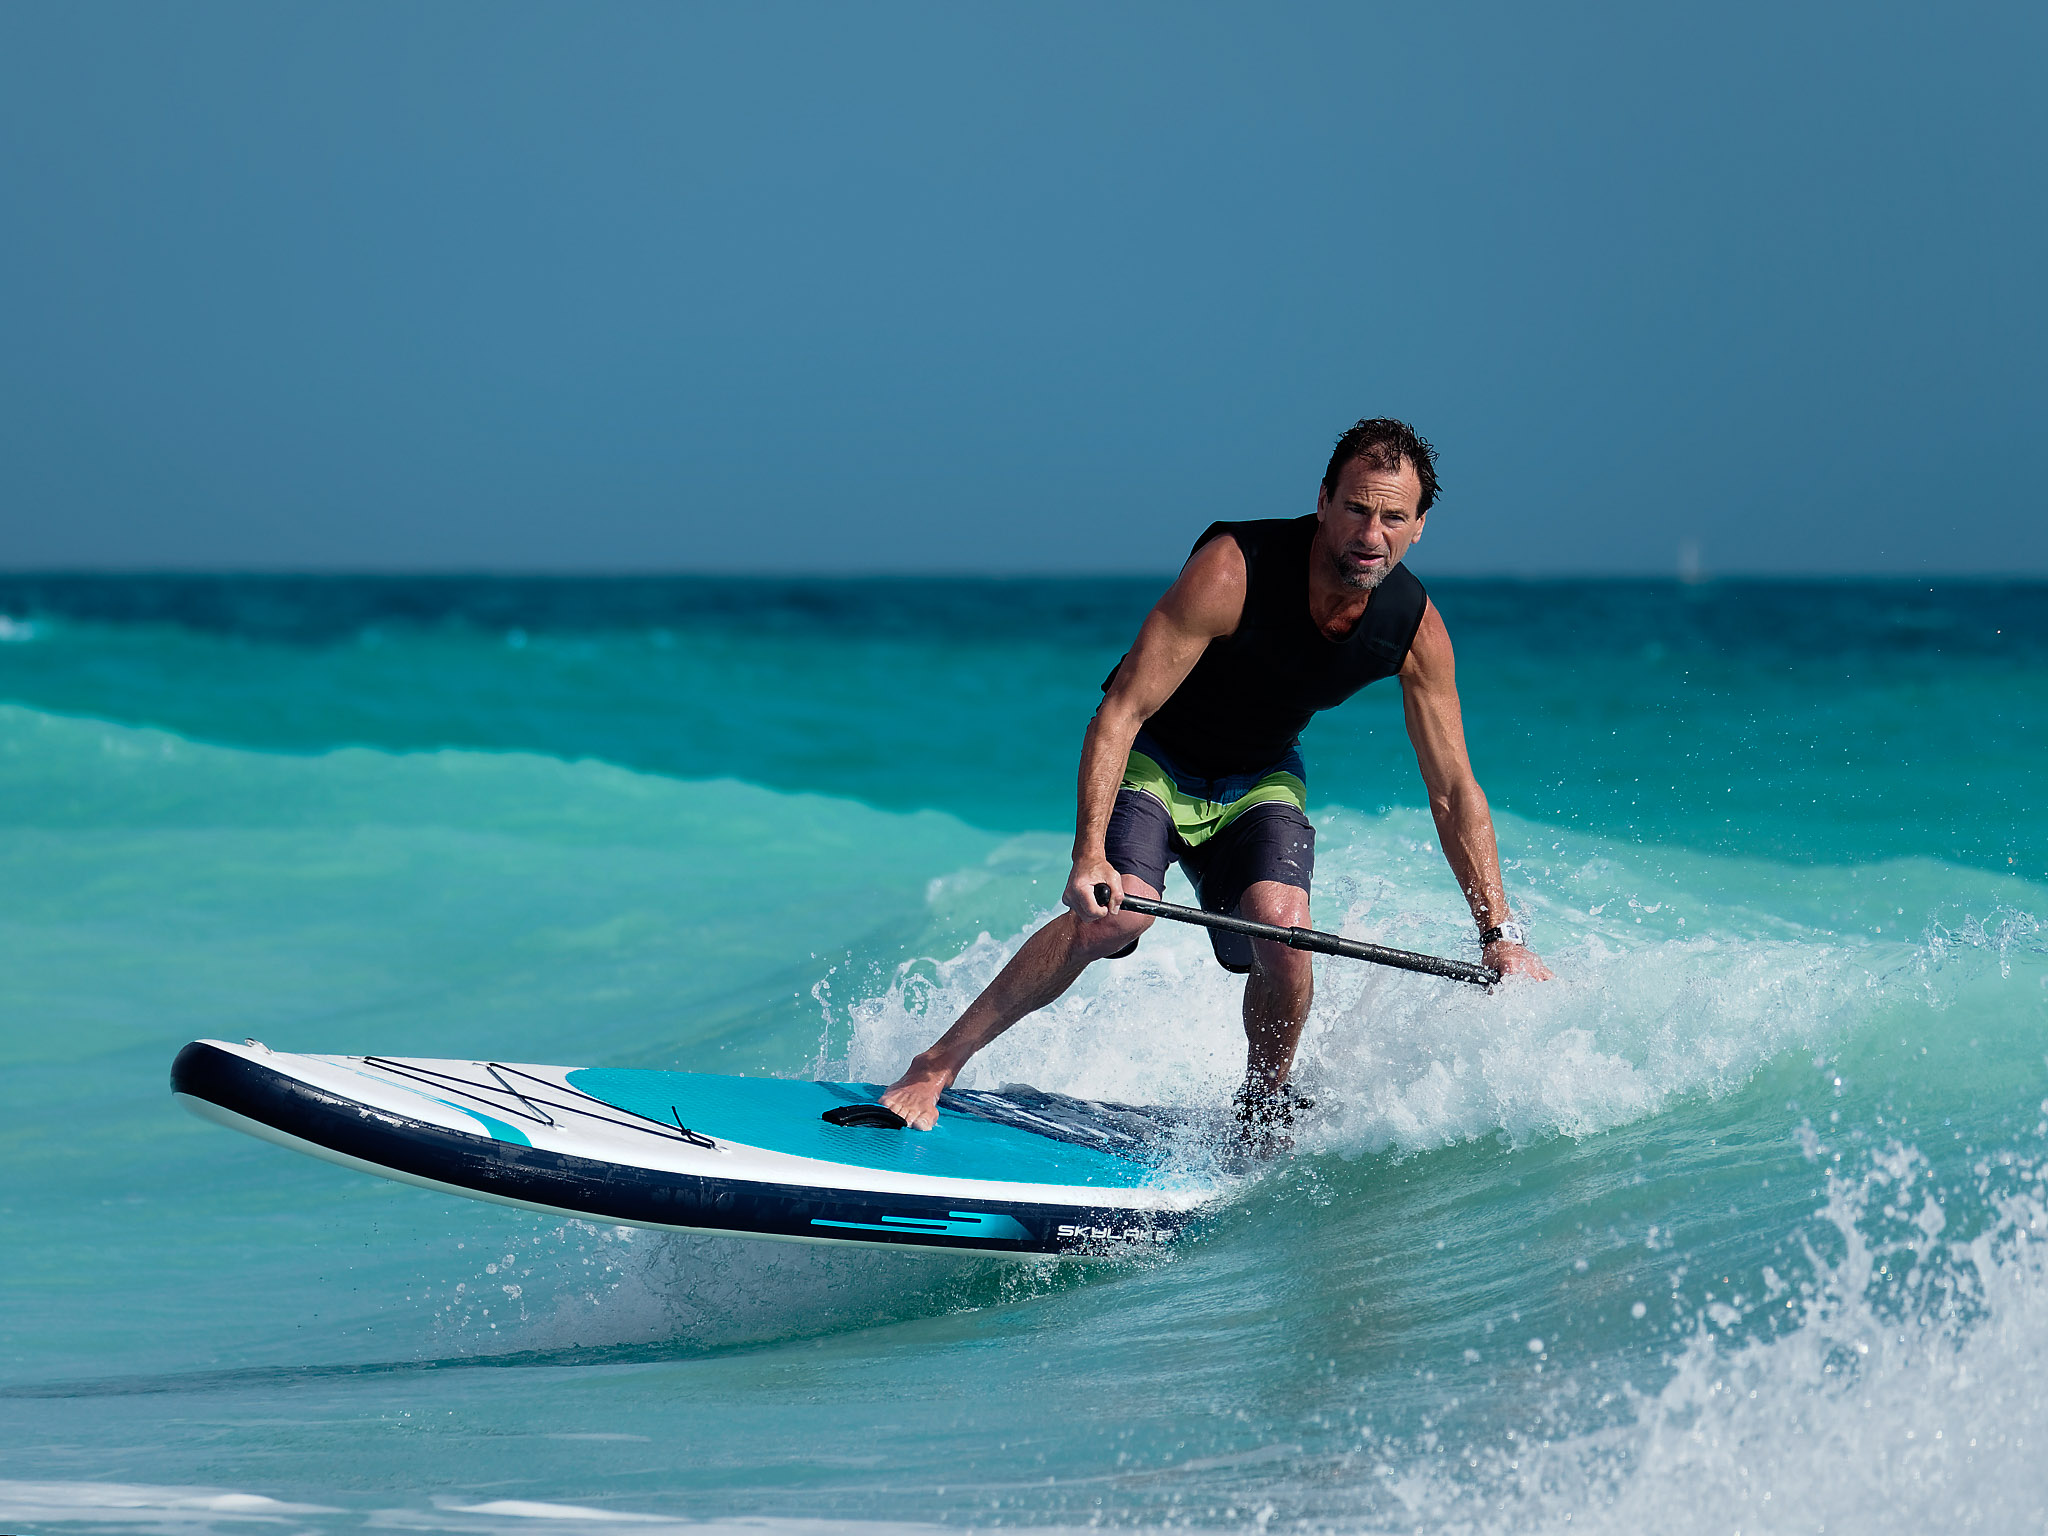 Man surfing an inflatable SUP